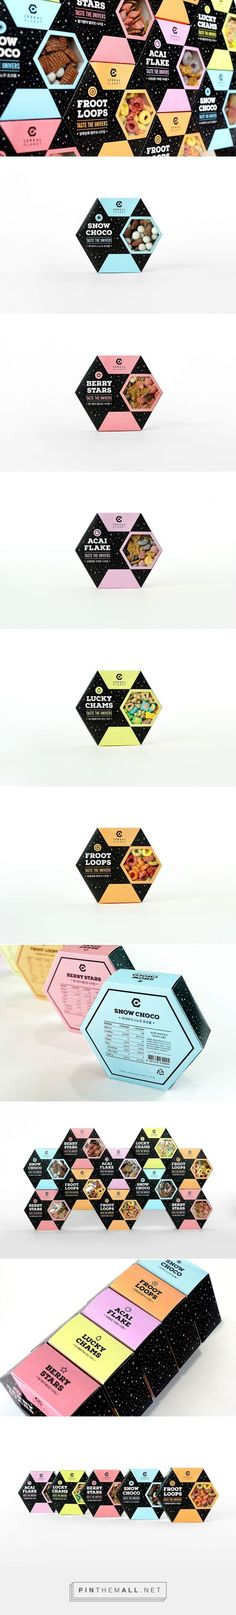 Cereal Planet Packaging by Mihyun Sim   Fivestar Branding – Design and Branding Agency & Inspiration Gallery